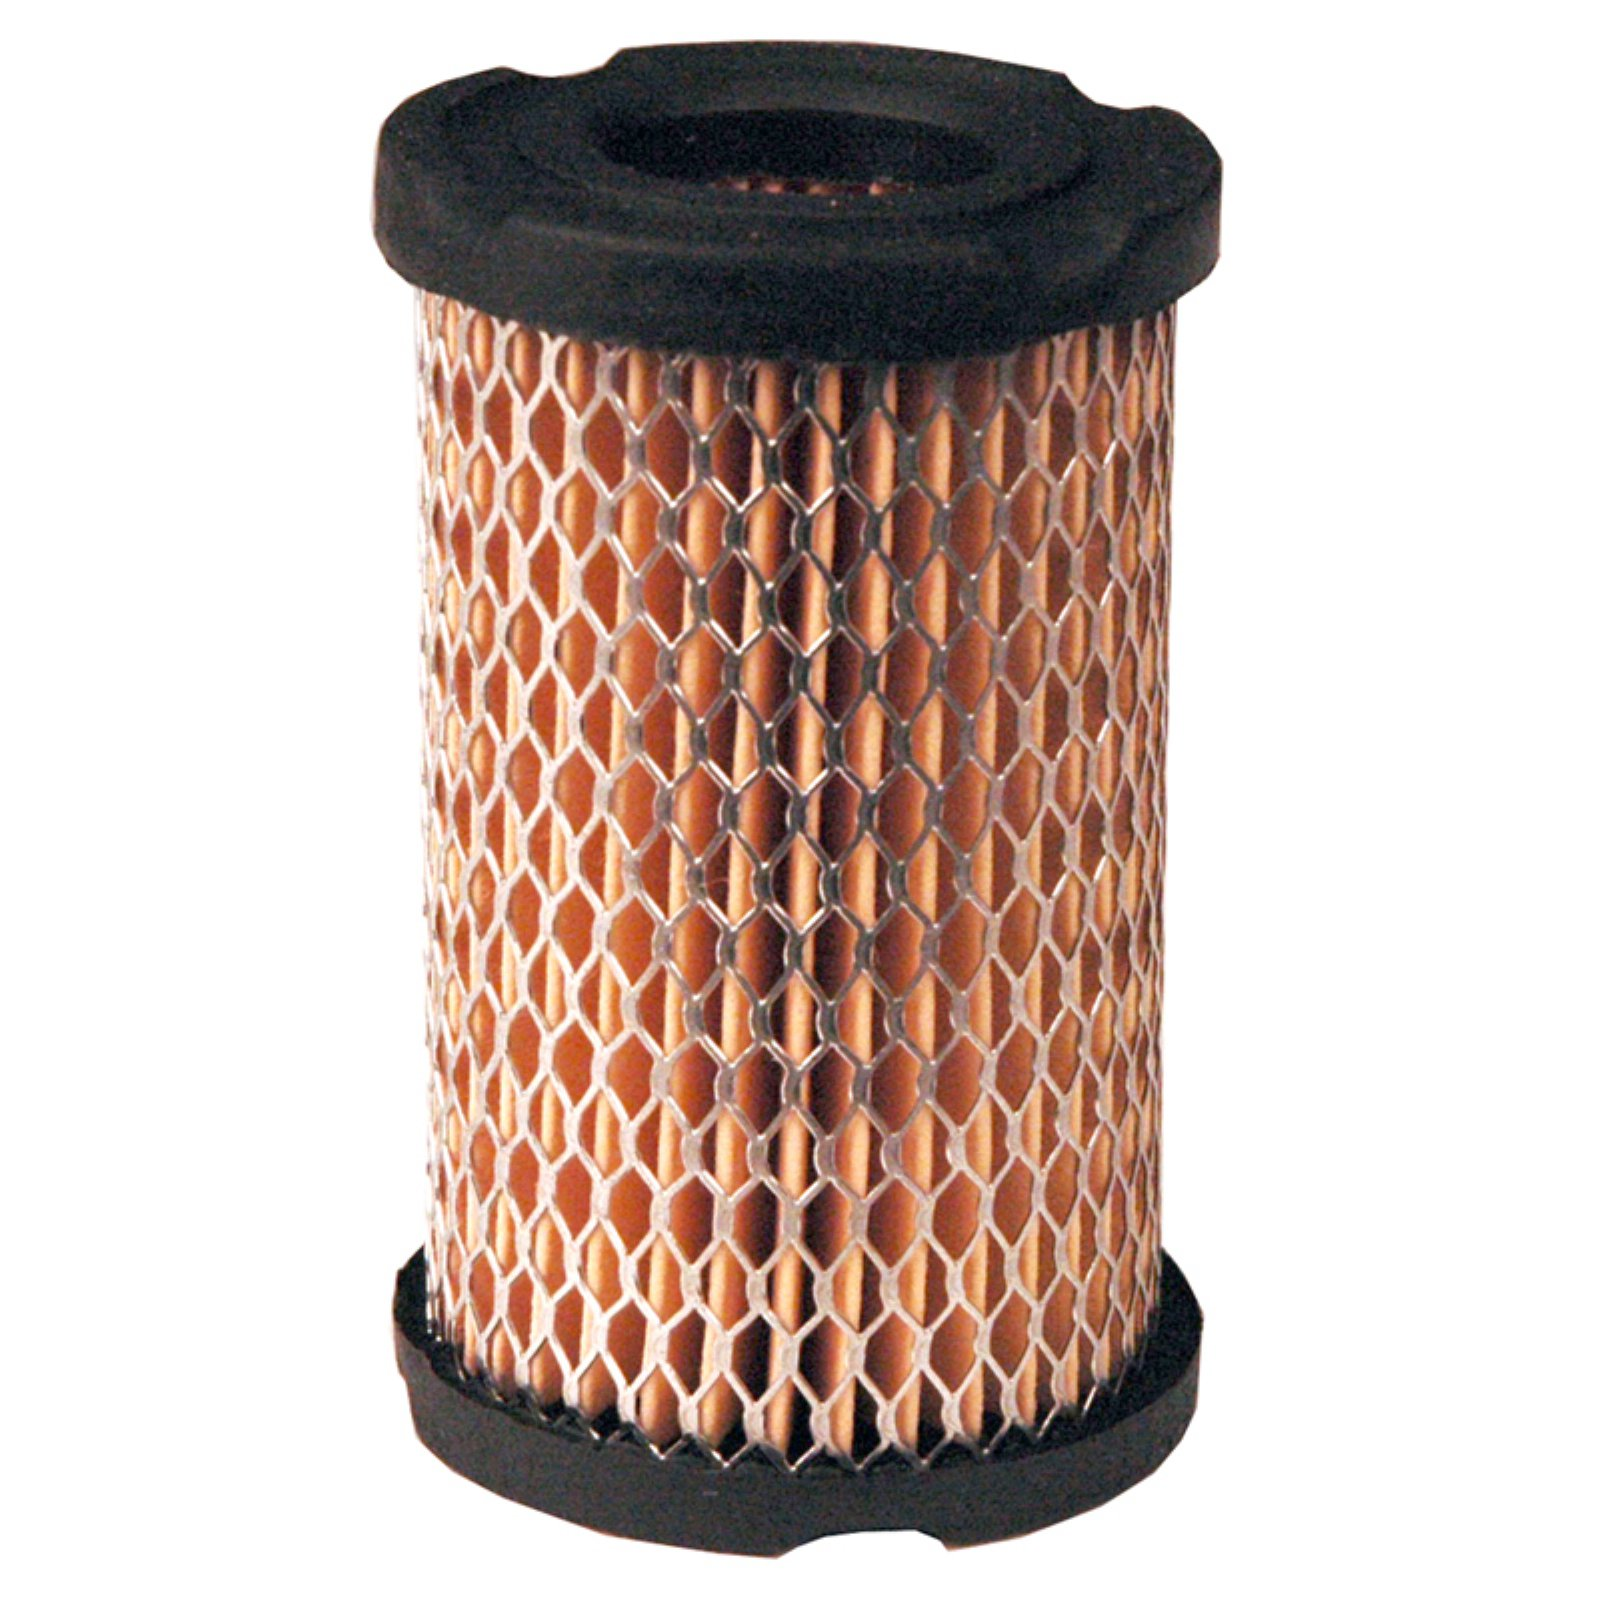 Maxpower 334339 Tecumseh and Sears 63087A Air Filter